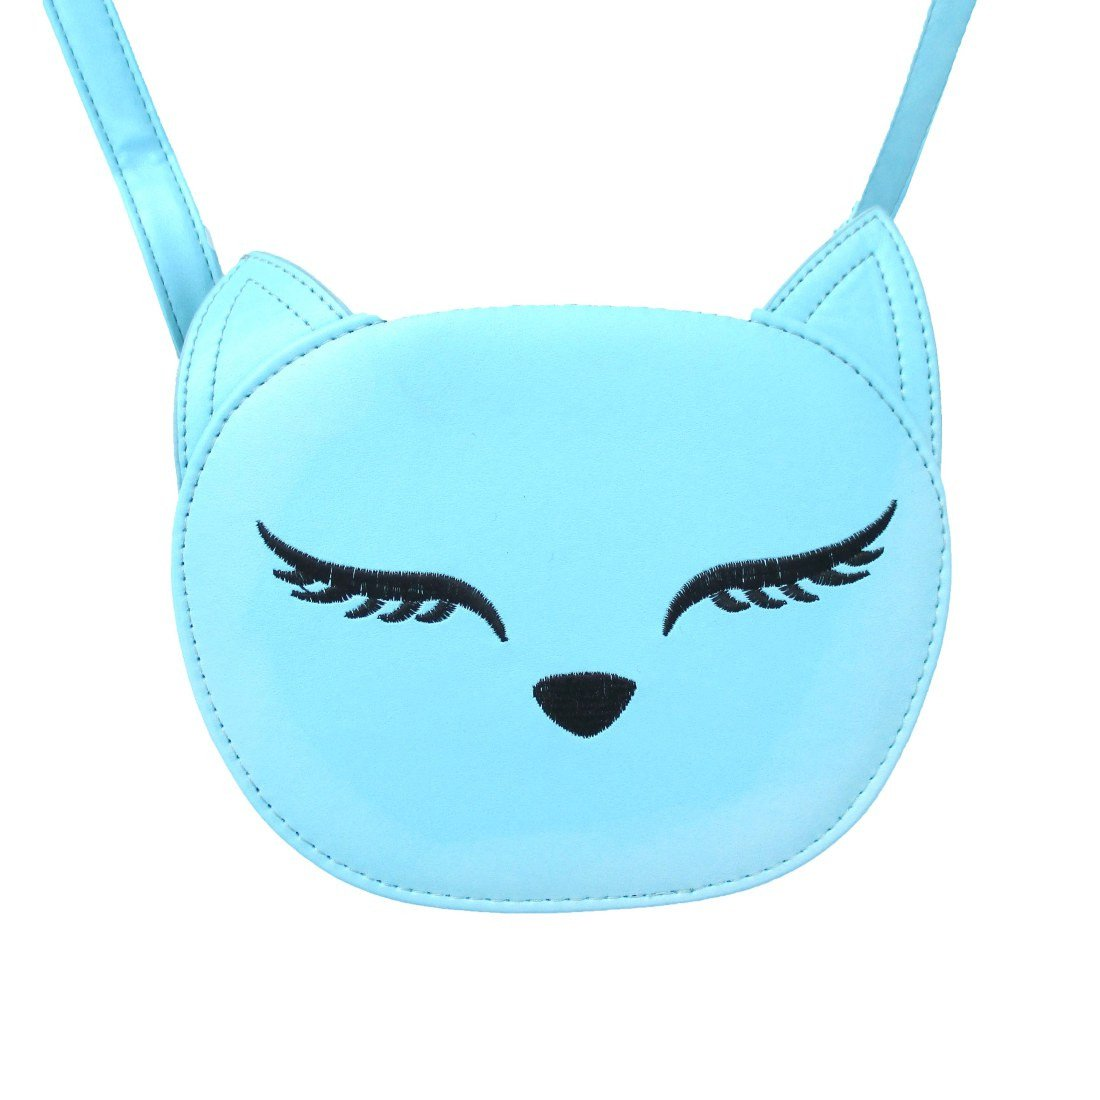 Kitty Cat Face Shaped xBody Bag for Women in Mint Blue